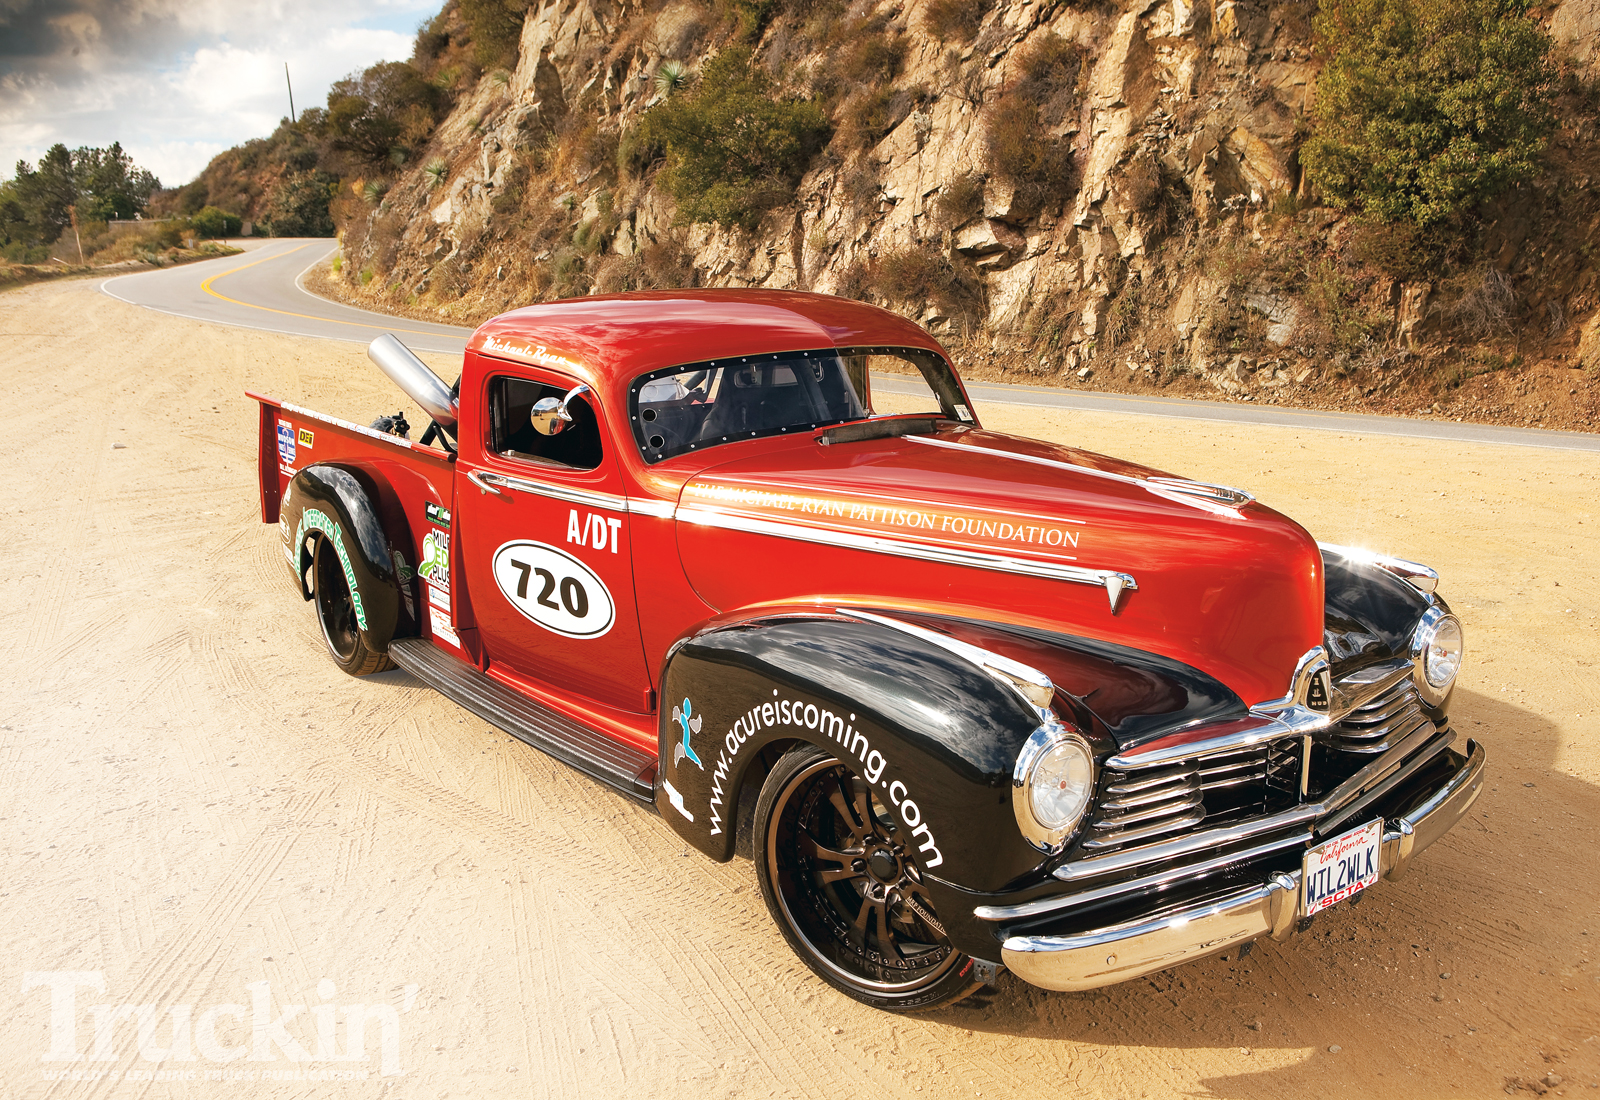 Rare '47 Hudson Pickup Just Sold - Rod Authority